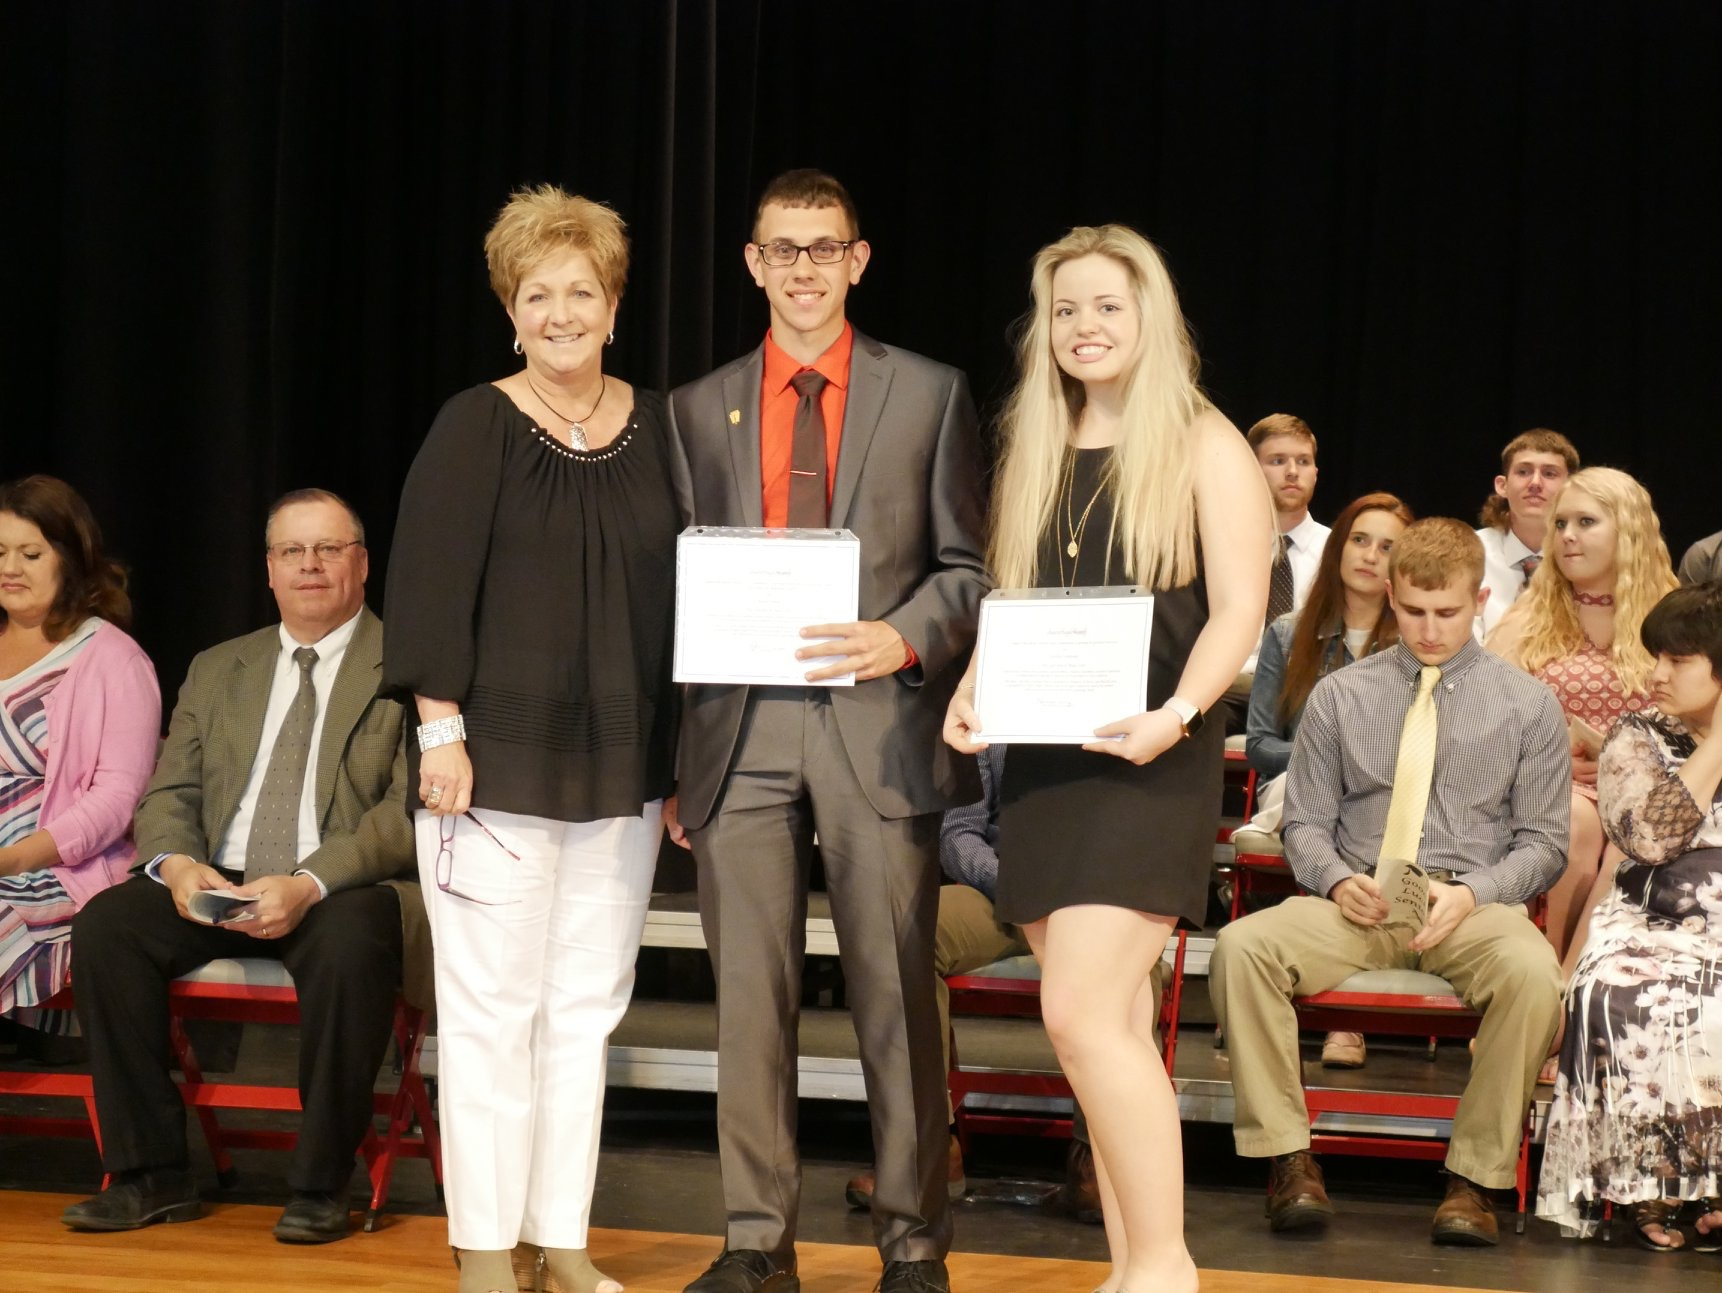 2018 Scholarship Winners: Aaron Poling (Annual Recipient) and Cynthia Schneider (One-time Recipient) (Pictured with Rhonda Irey, STG Founder)